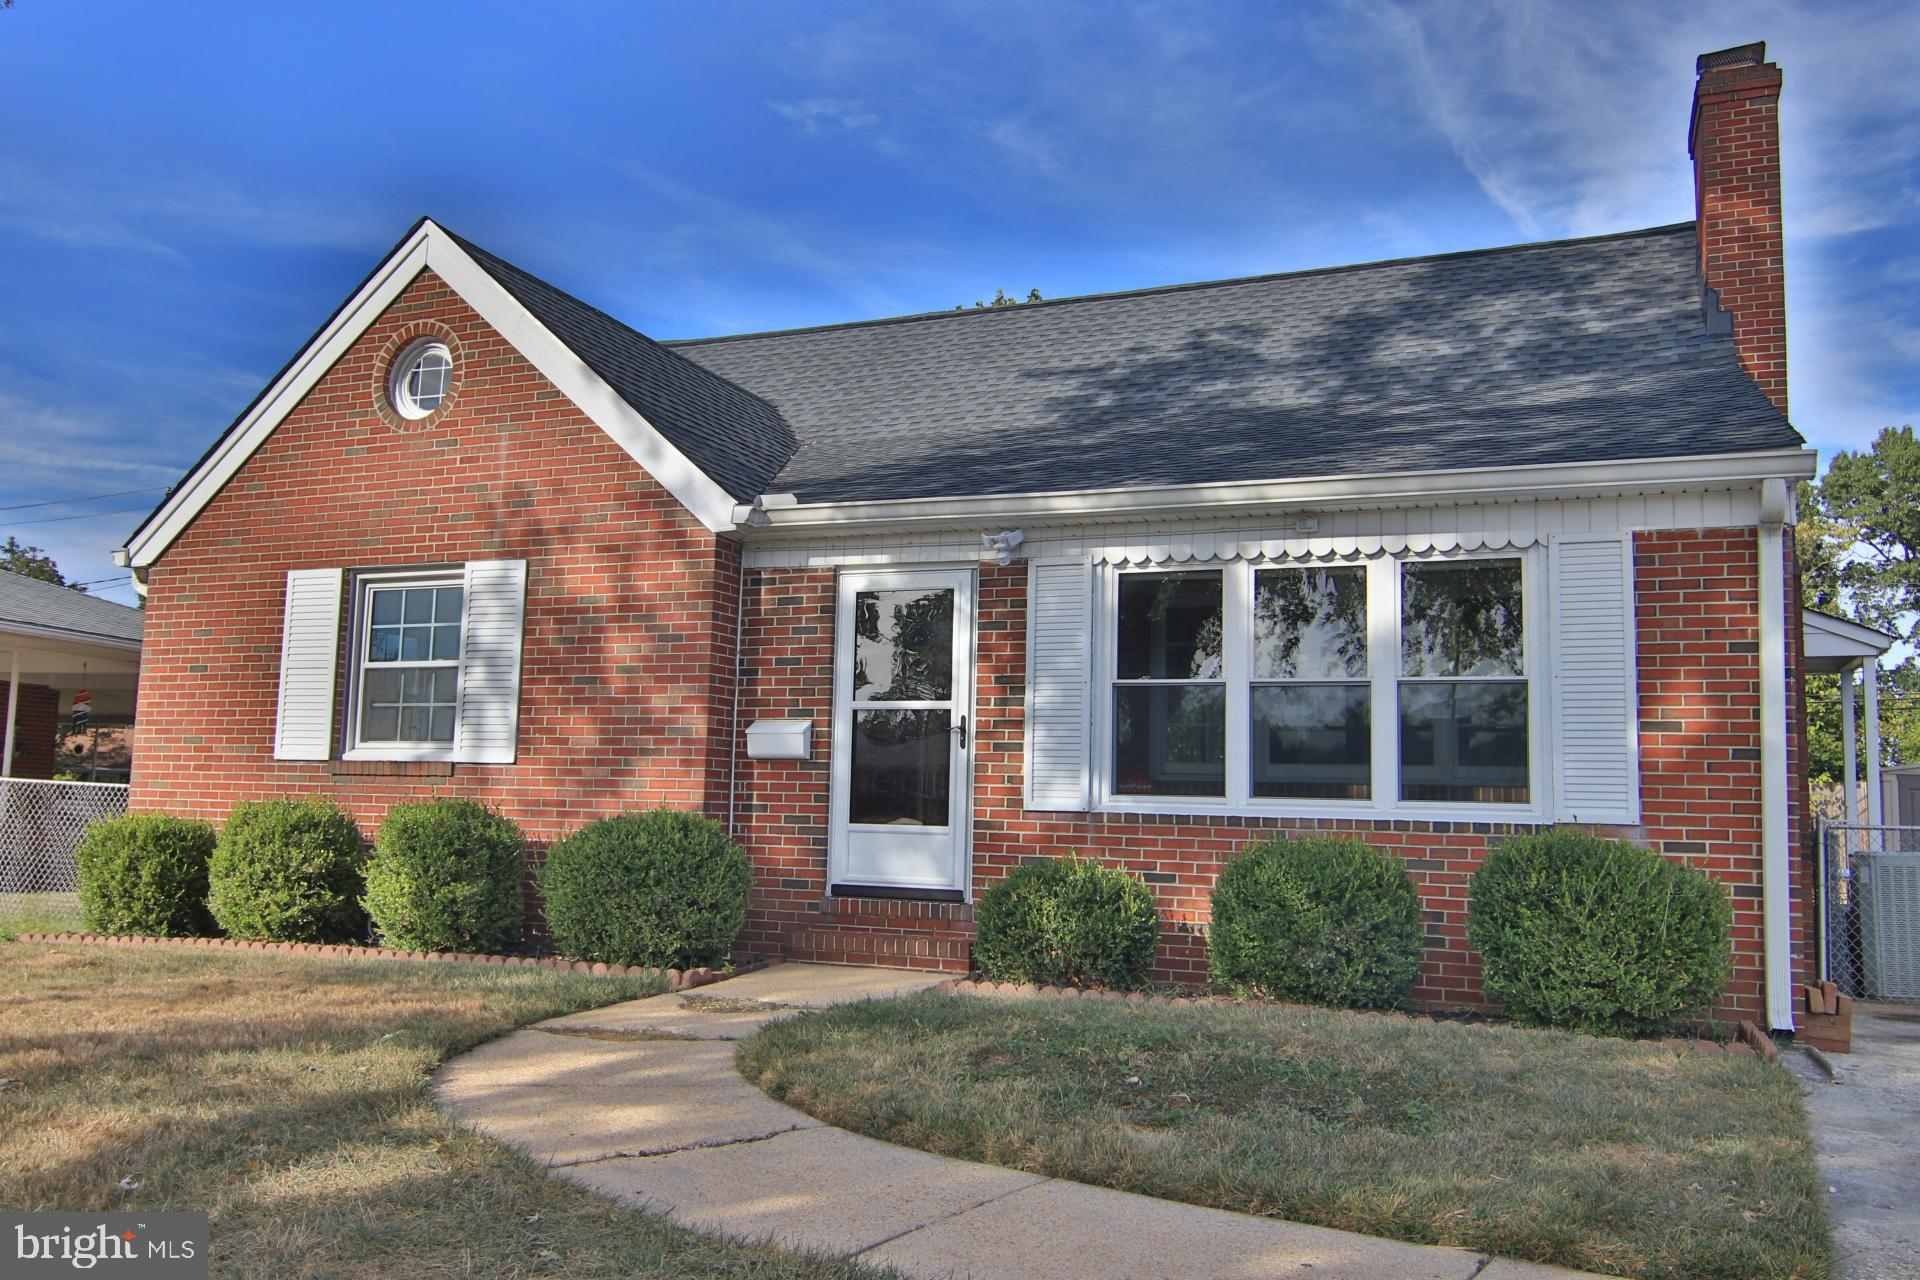 714 E MAPLE ROAD, LINTHICUM, MD 21090